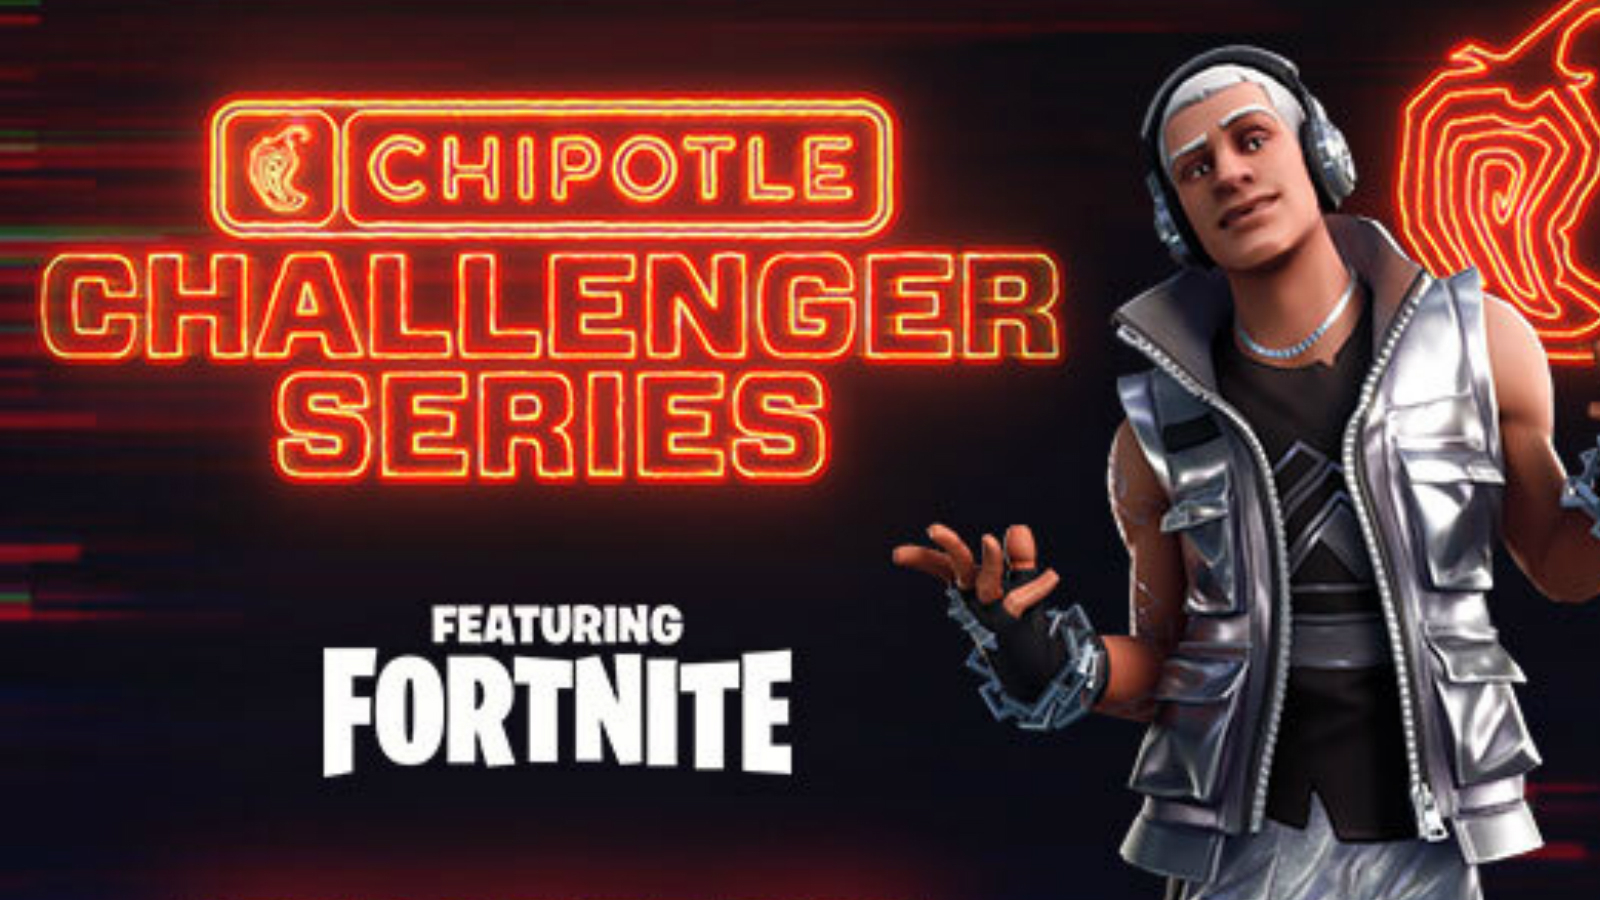 Chipotle Challenger Series Fortnite